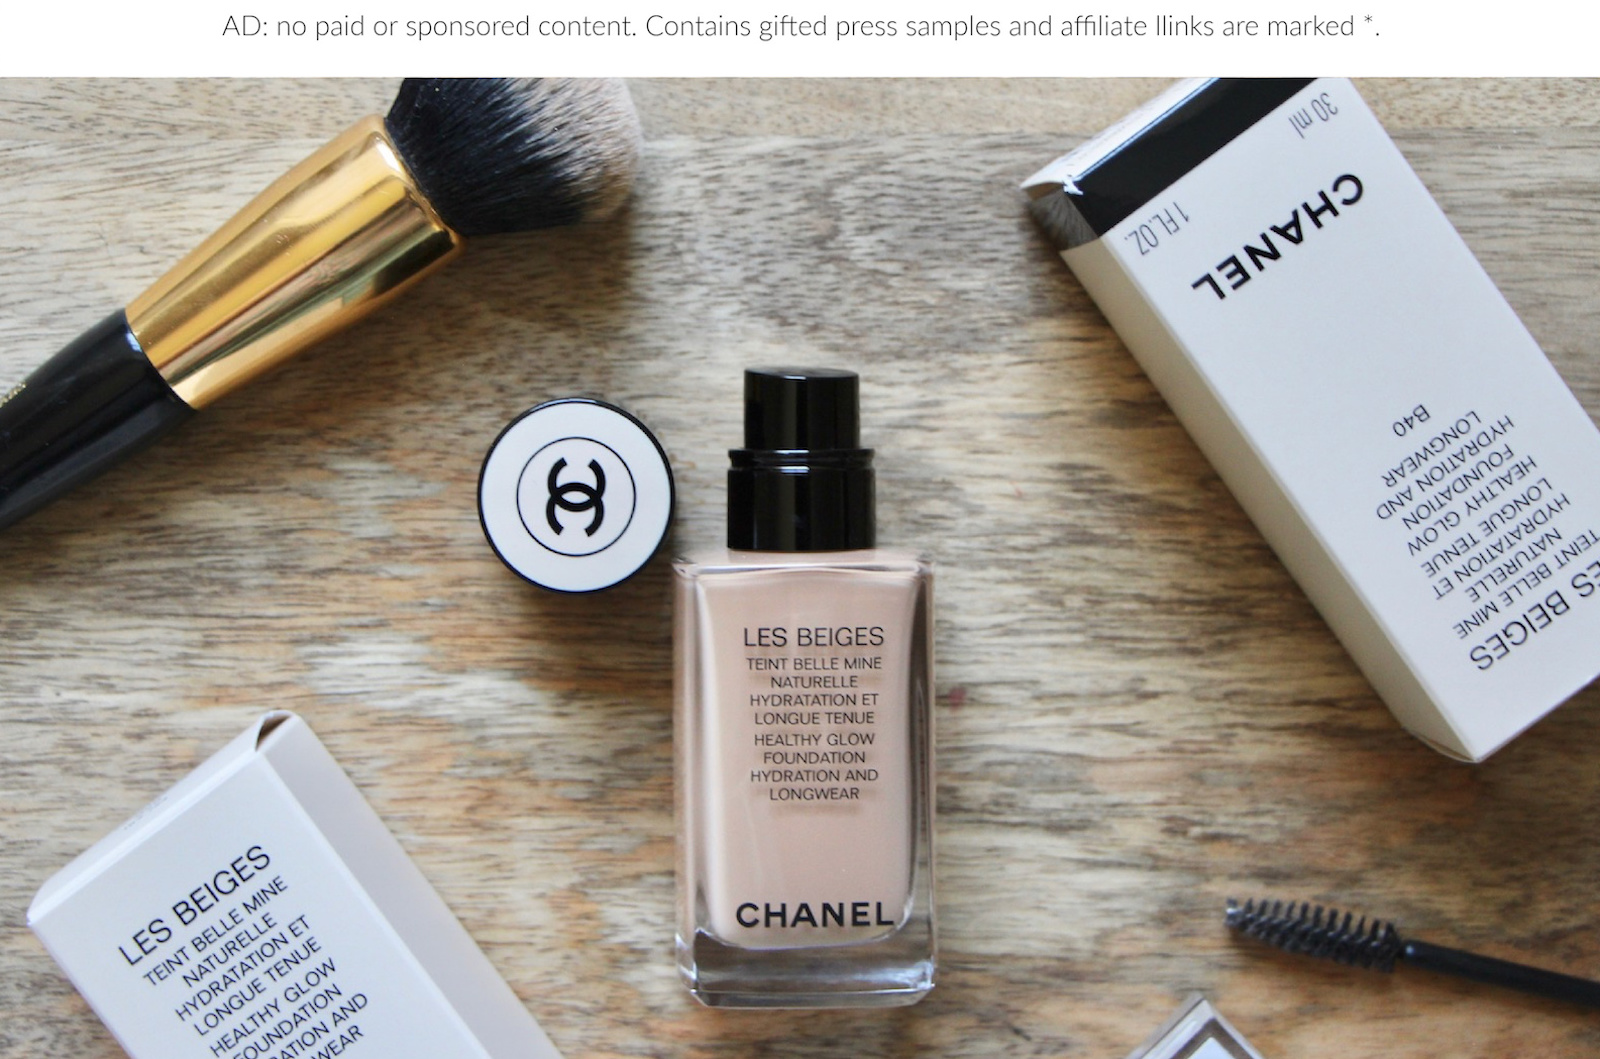 Chanel Les Beiges Healthy Glow Makeup